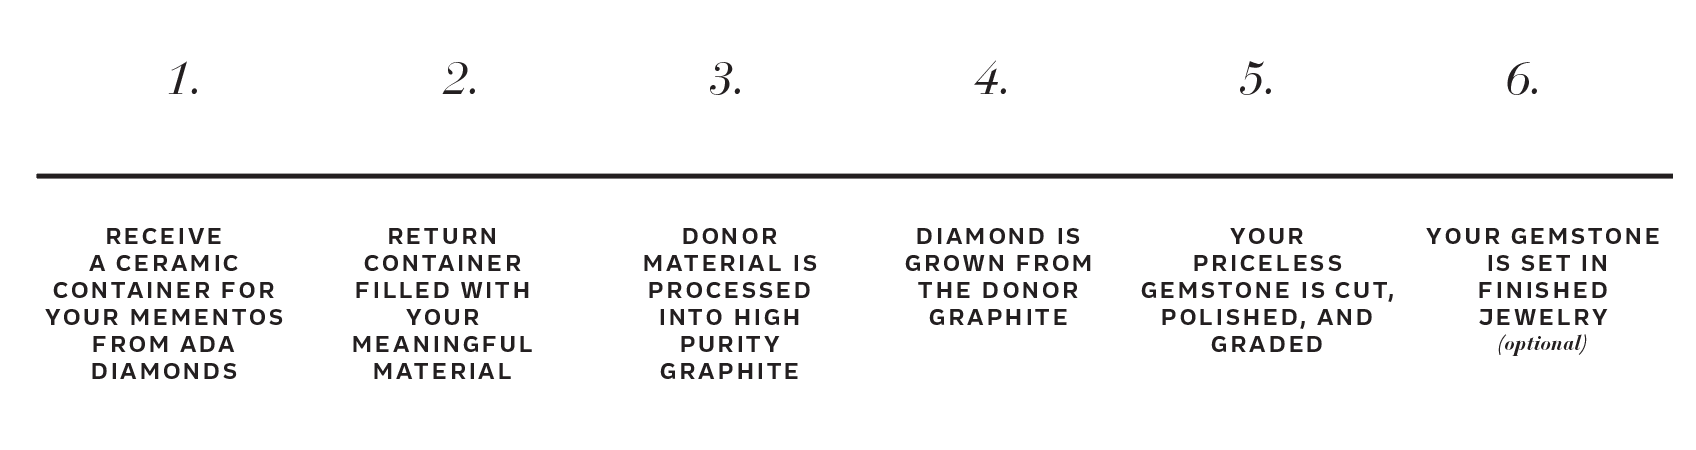 Lavoisier Lab Created Diamonds Timeline Guide